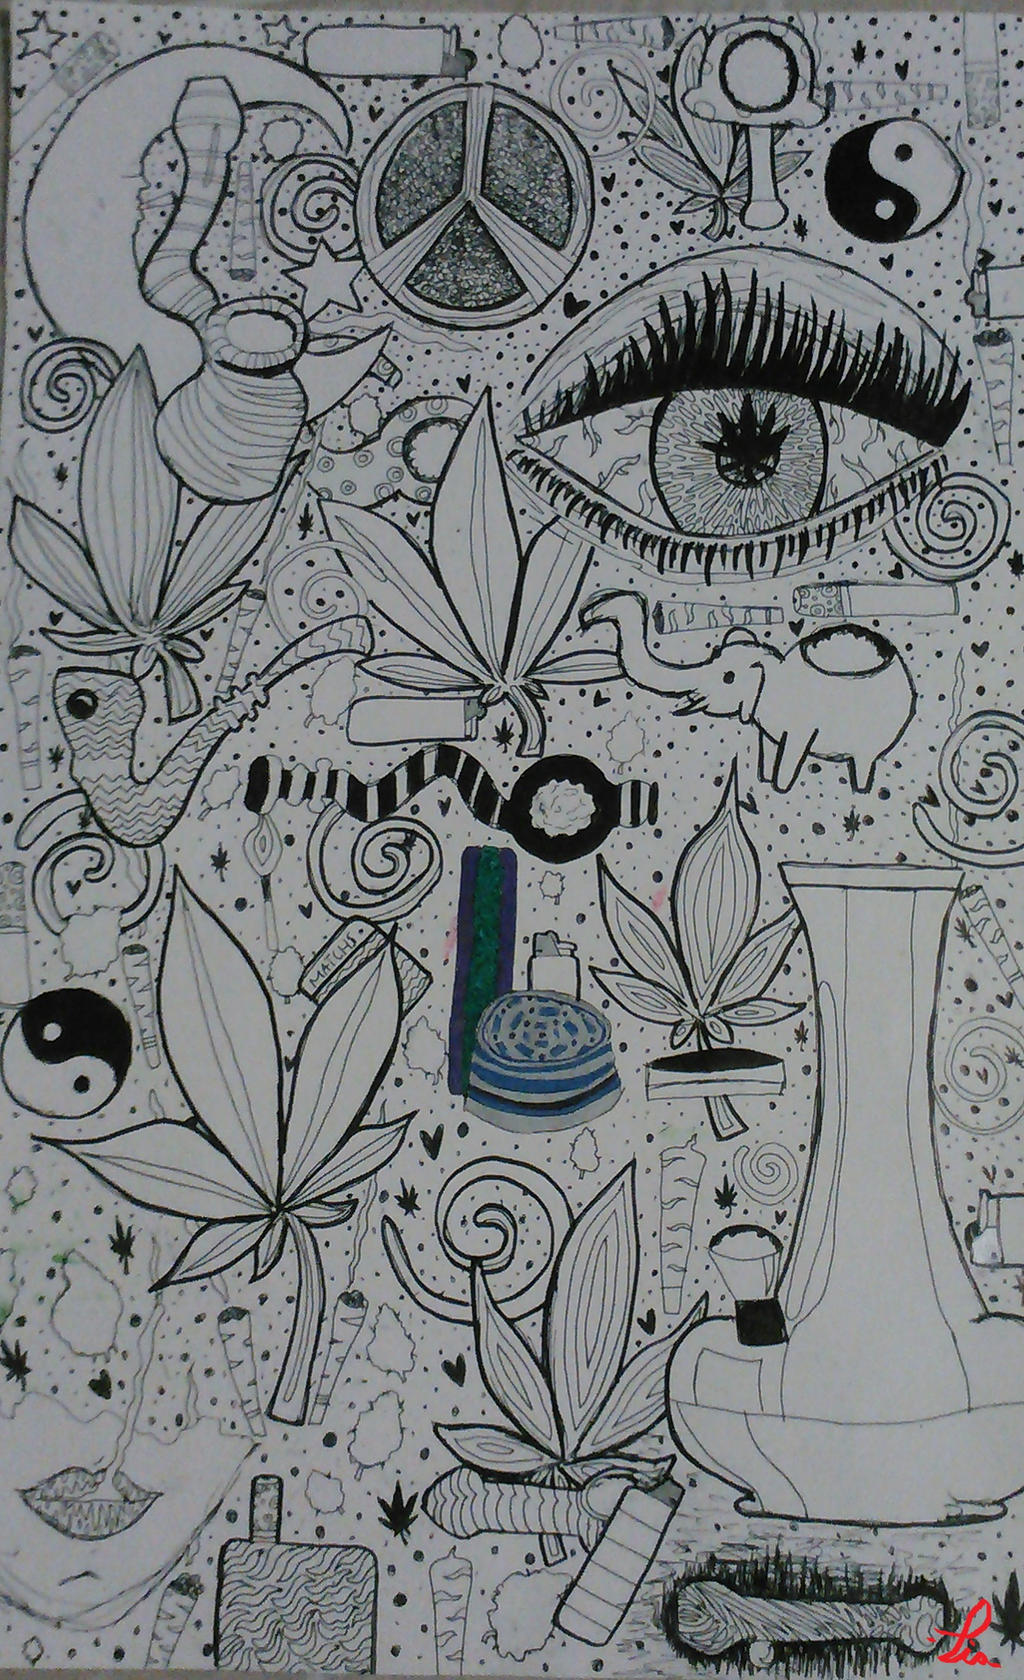 Half Done Weed Poster Still Needs Color By Xx Trippy Pot Leaf Coloring Pages